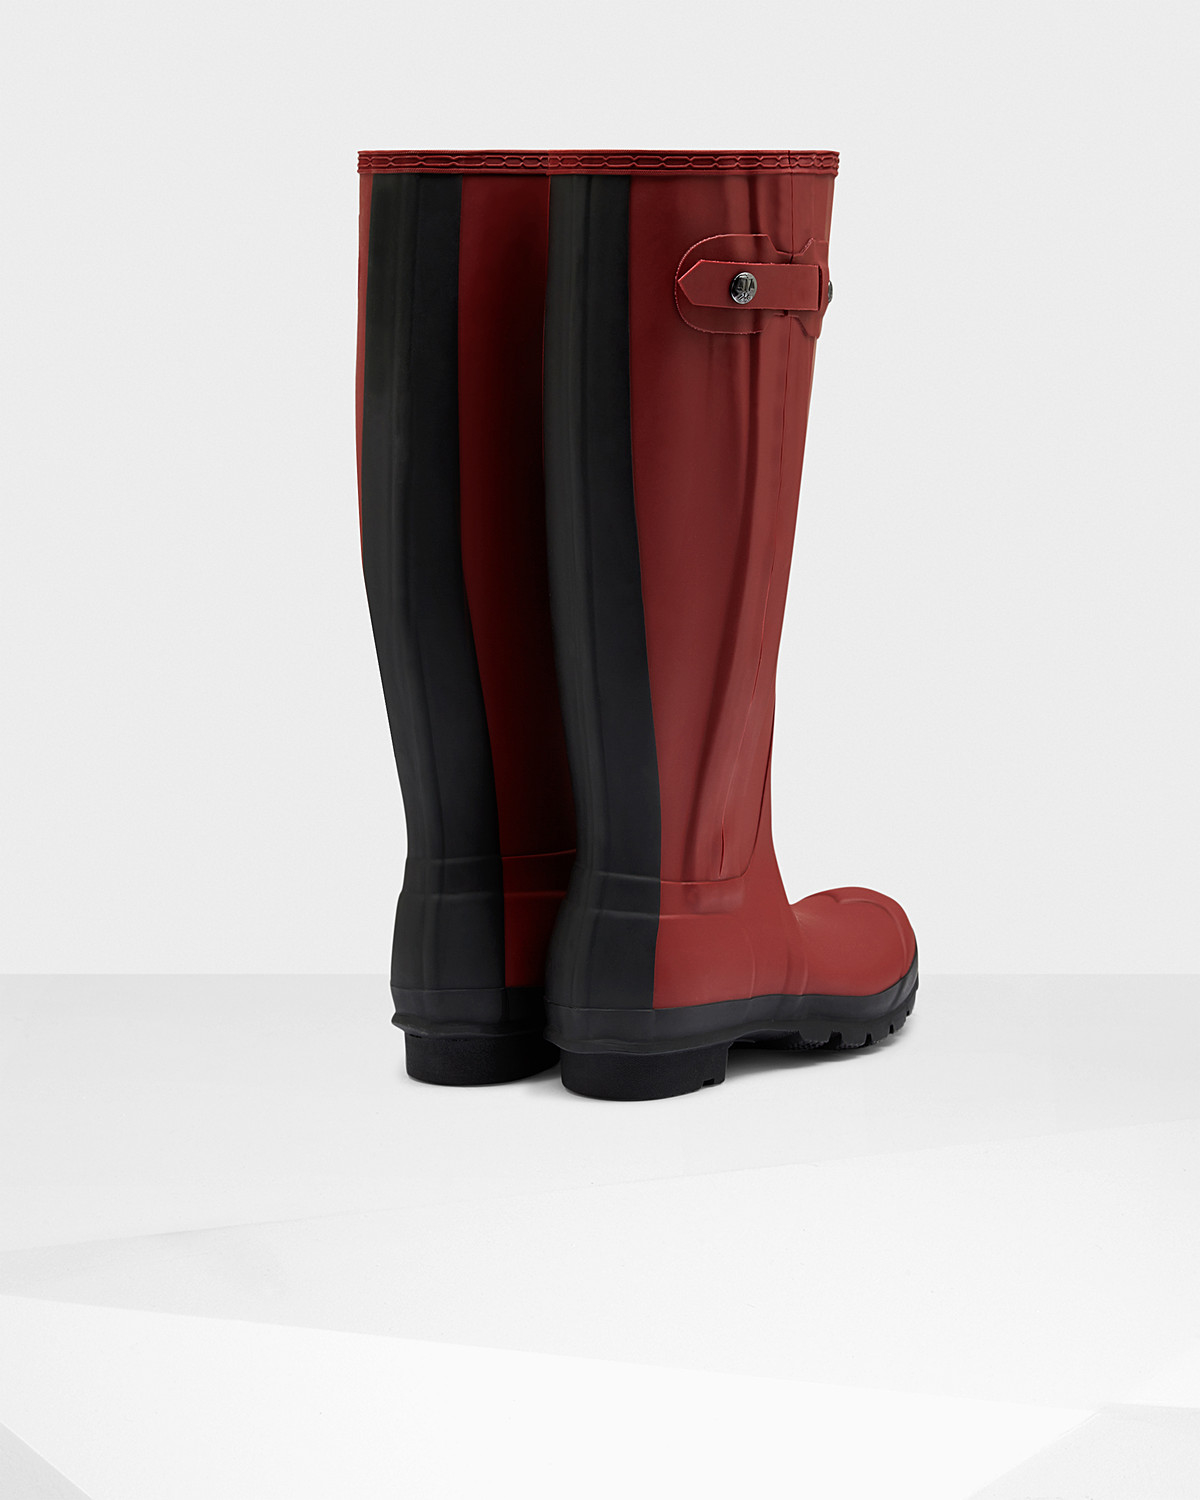 HUNTER Women's Original Slim Two Tone Wellington Boots in Red